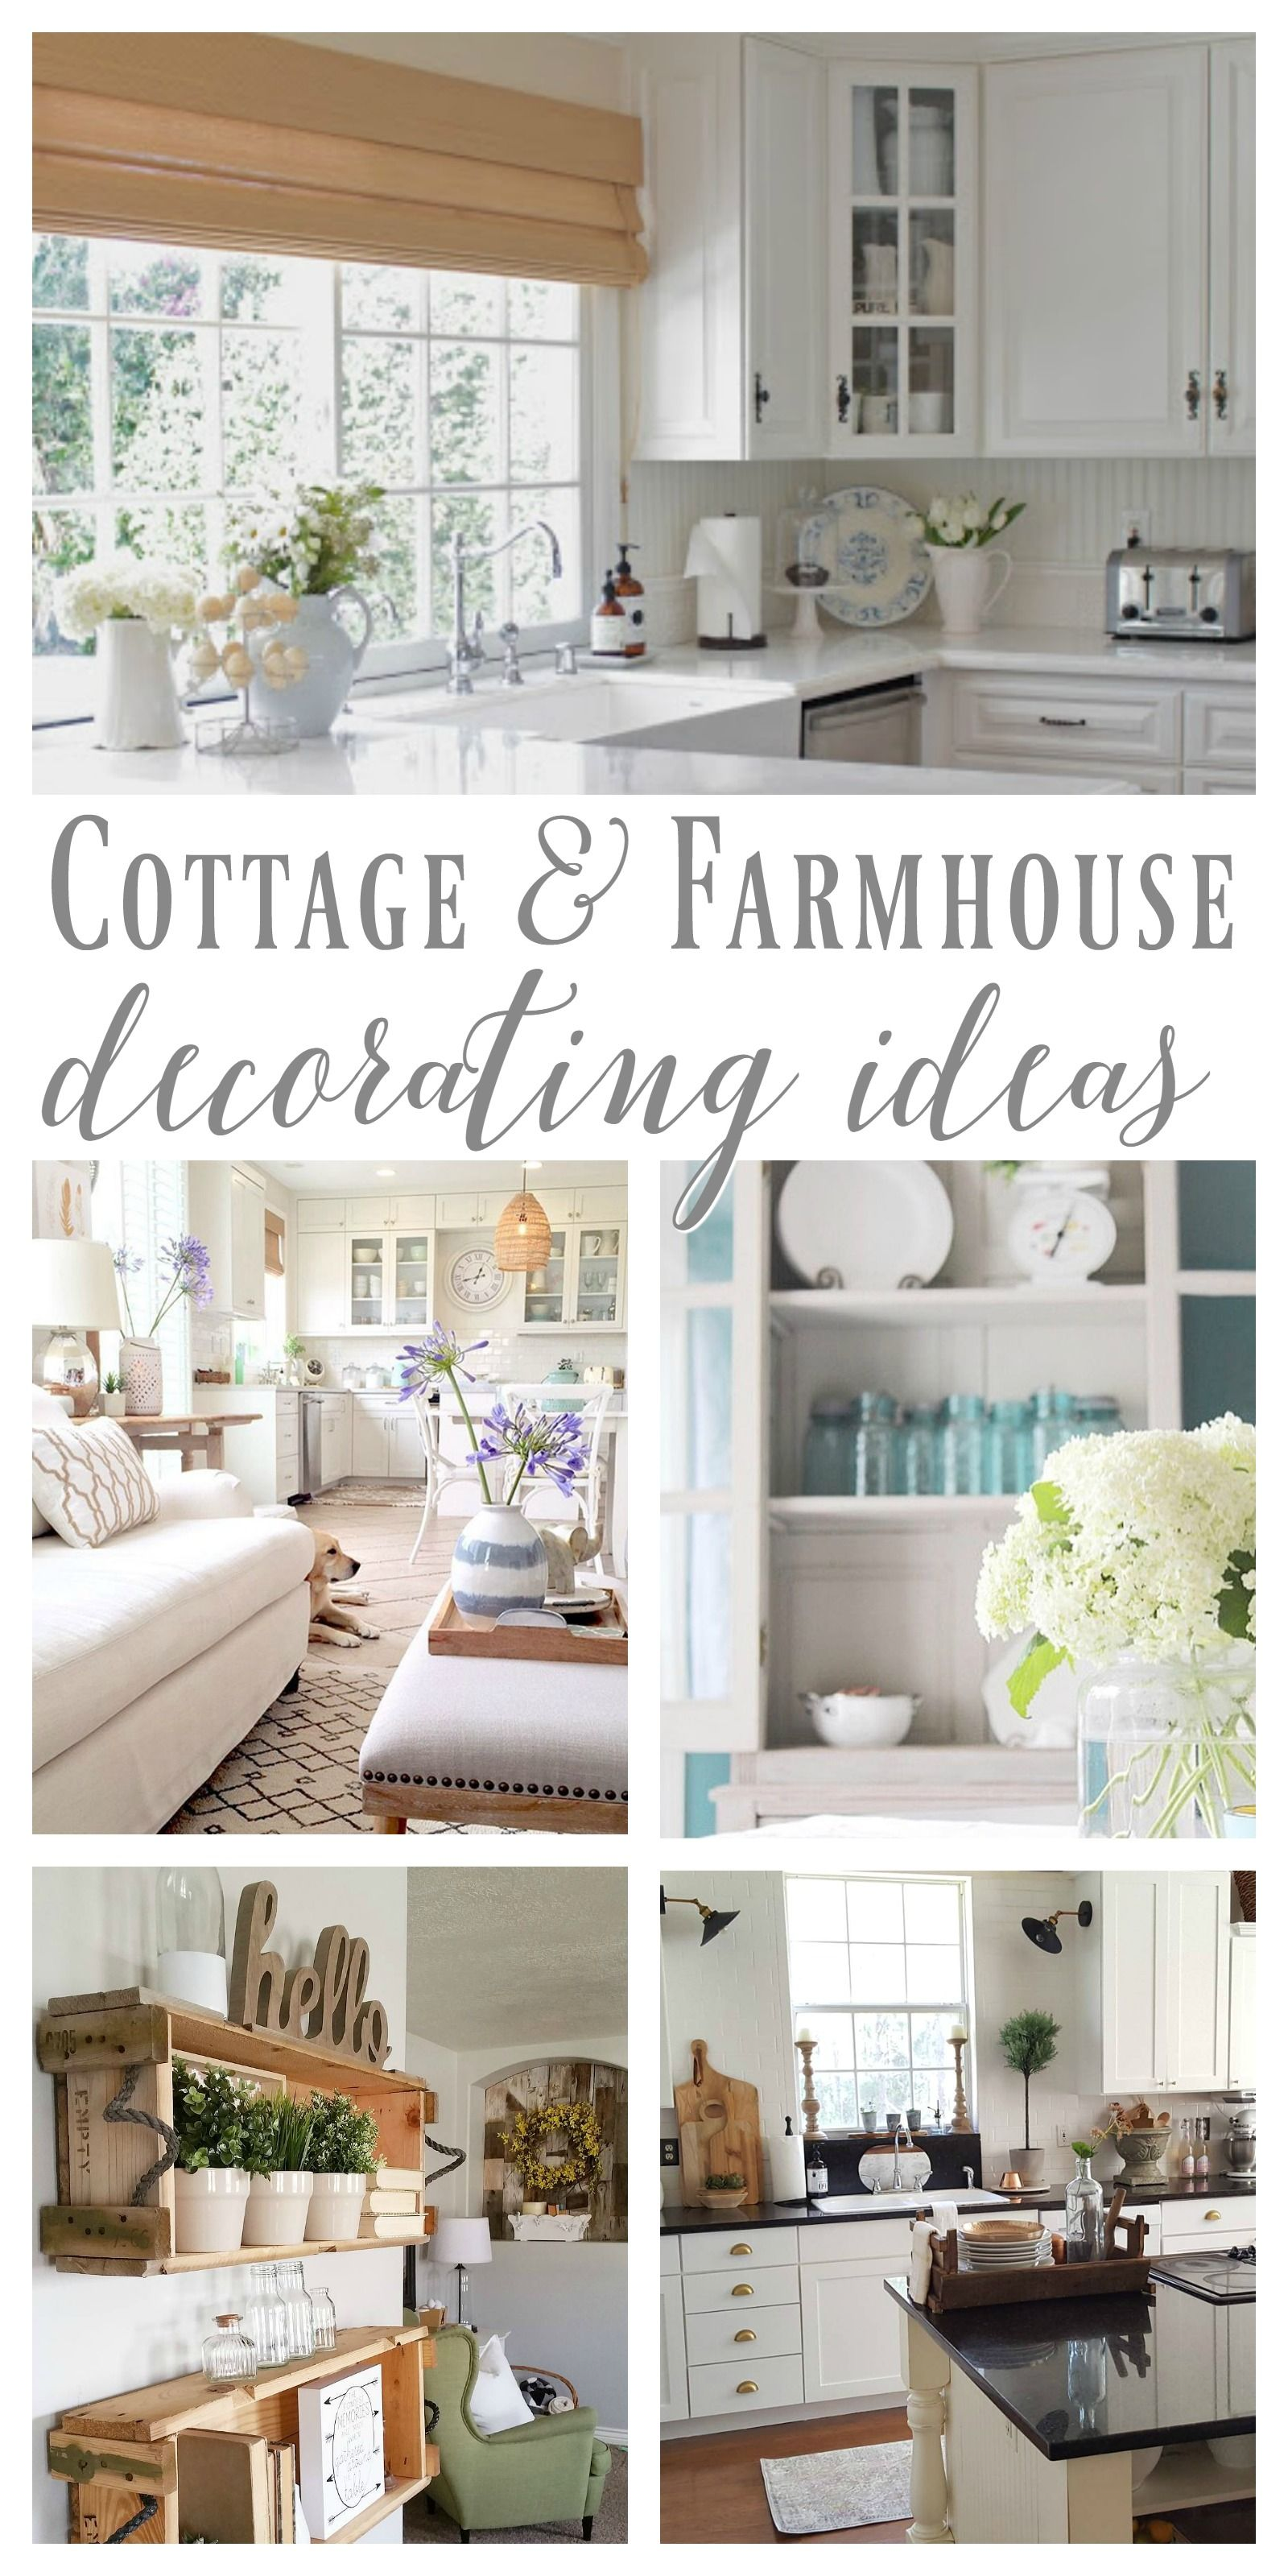 Cottage Farmhouse Features From Foxhollowfridayfavs Hometalk